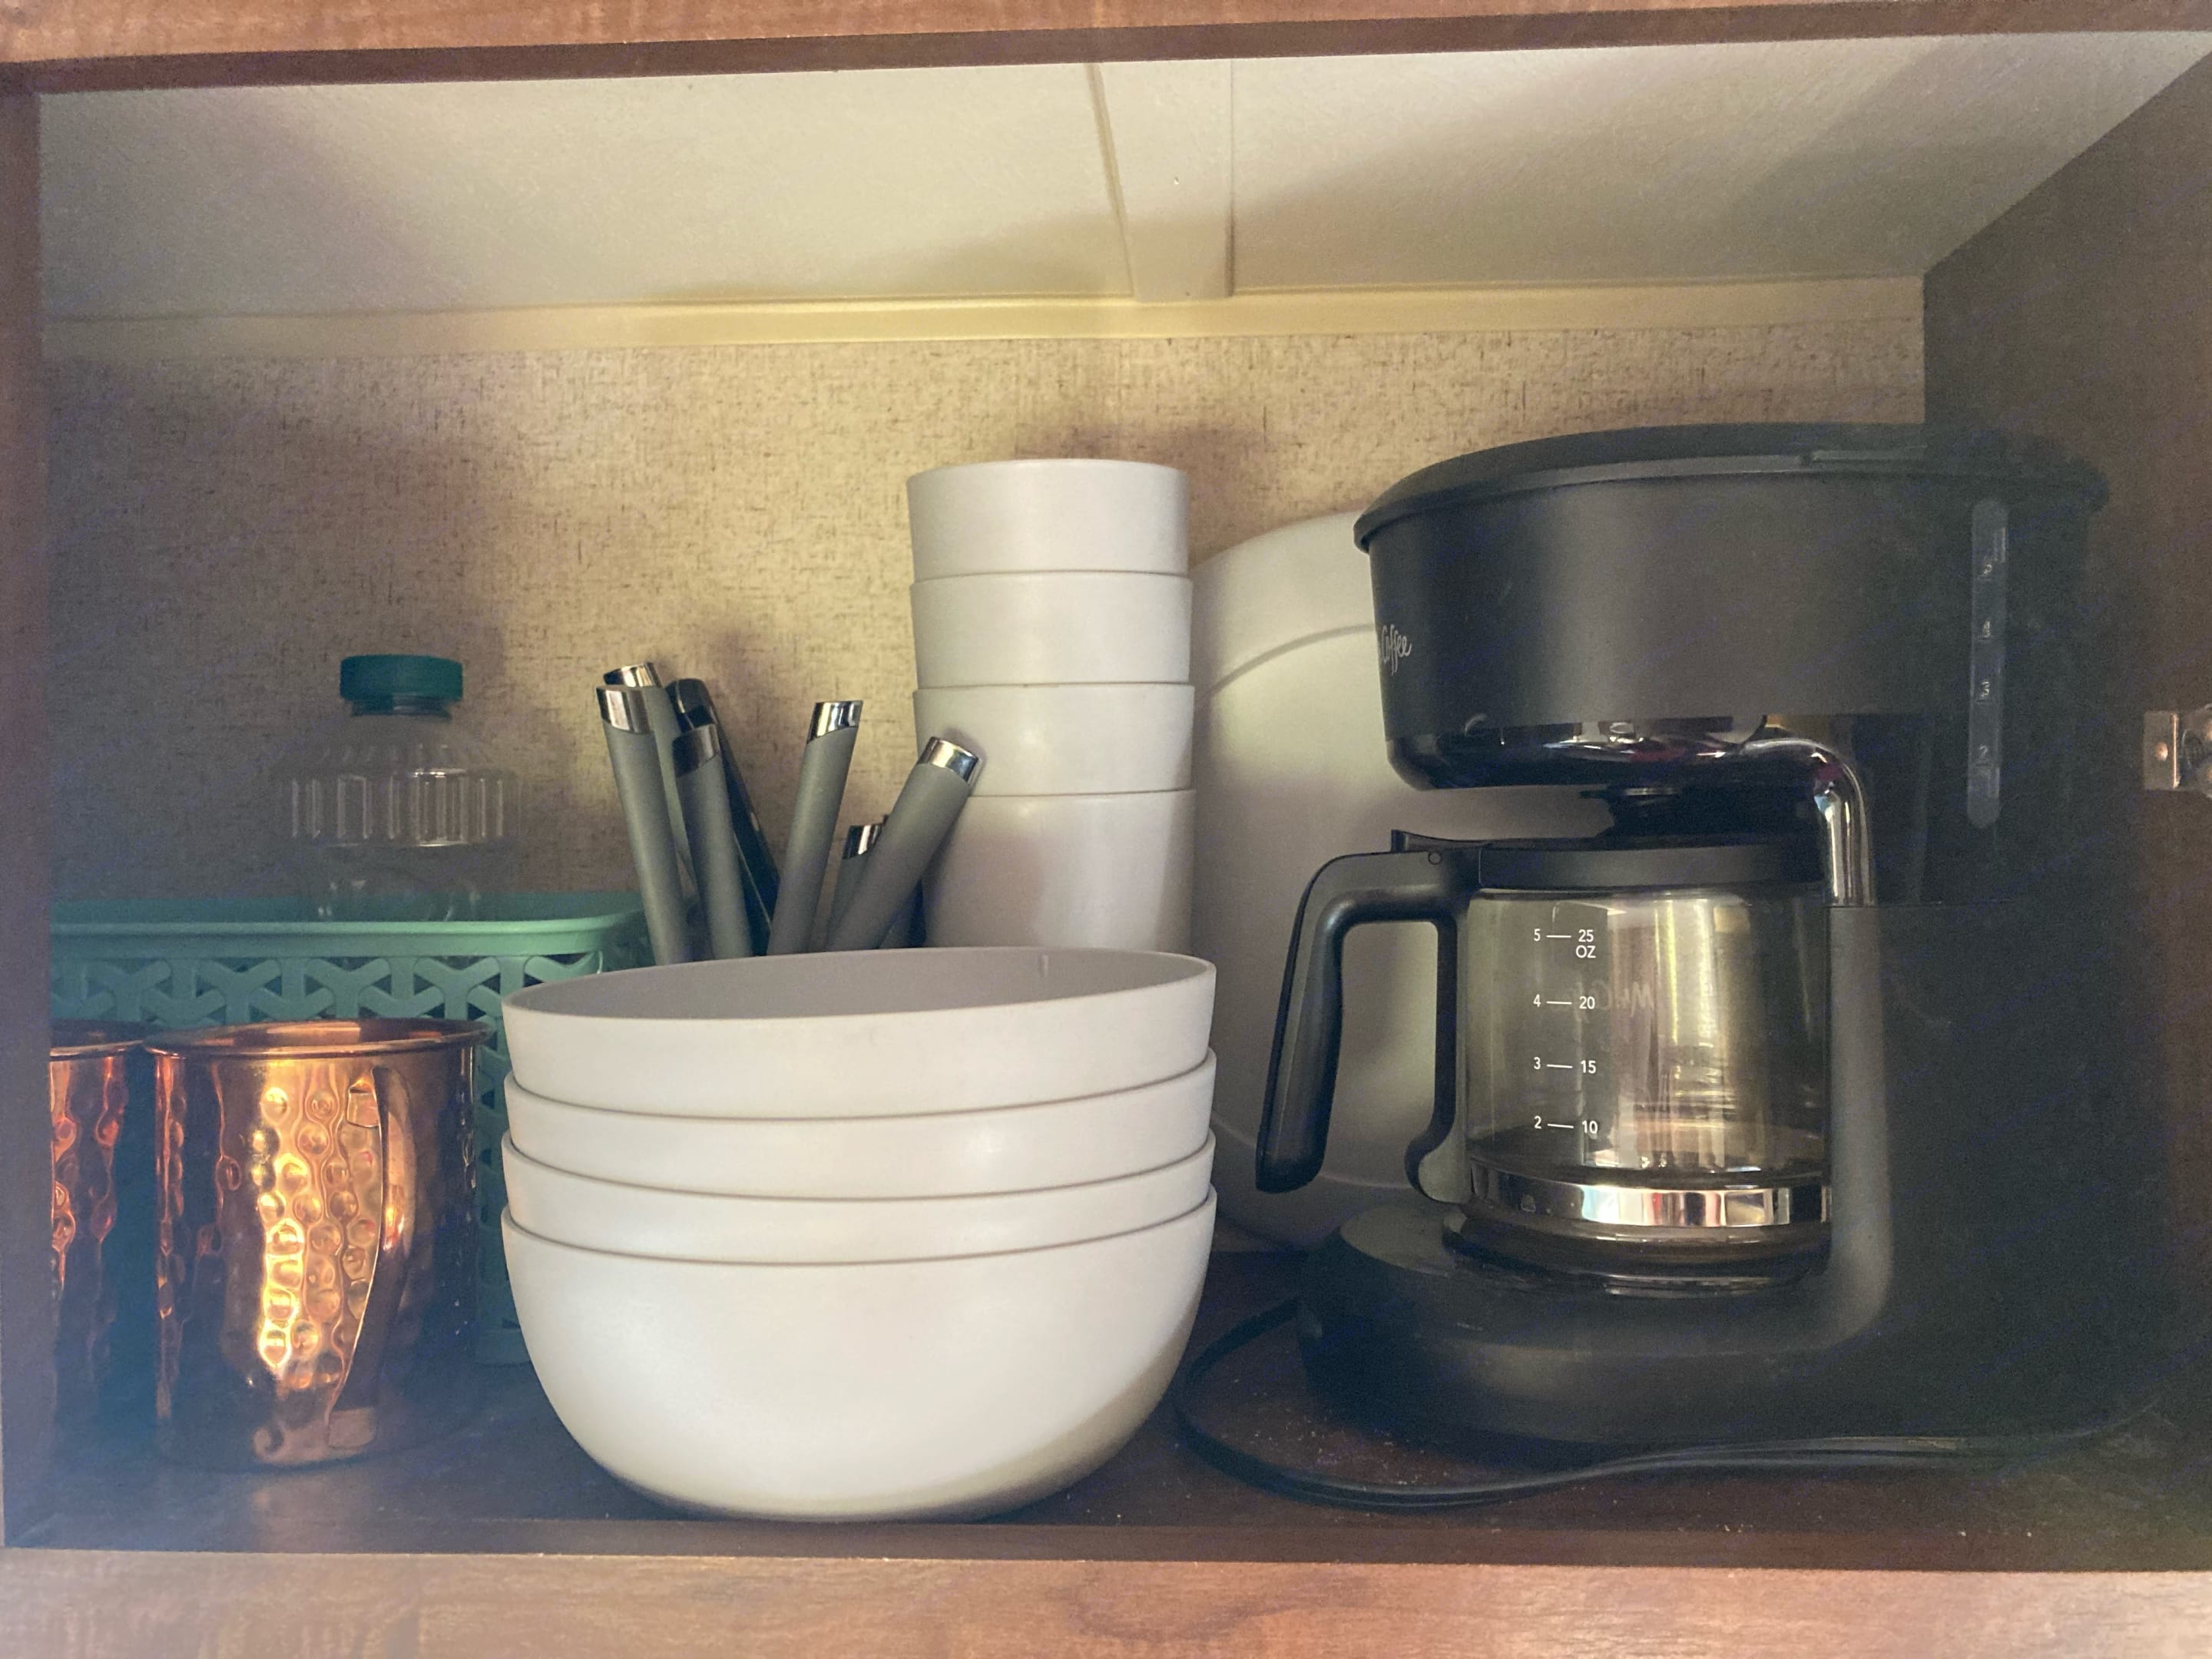 Included: Coffee Maker and filters, 4 sets of bowls, cups, plates, silverware, steak knives, copper mugs, paper towels, and more!. Jayco Jay Flight 2015